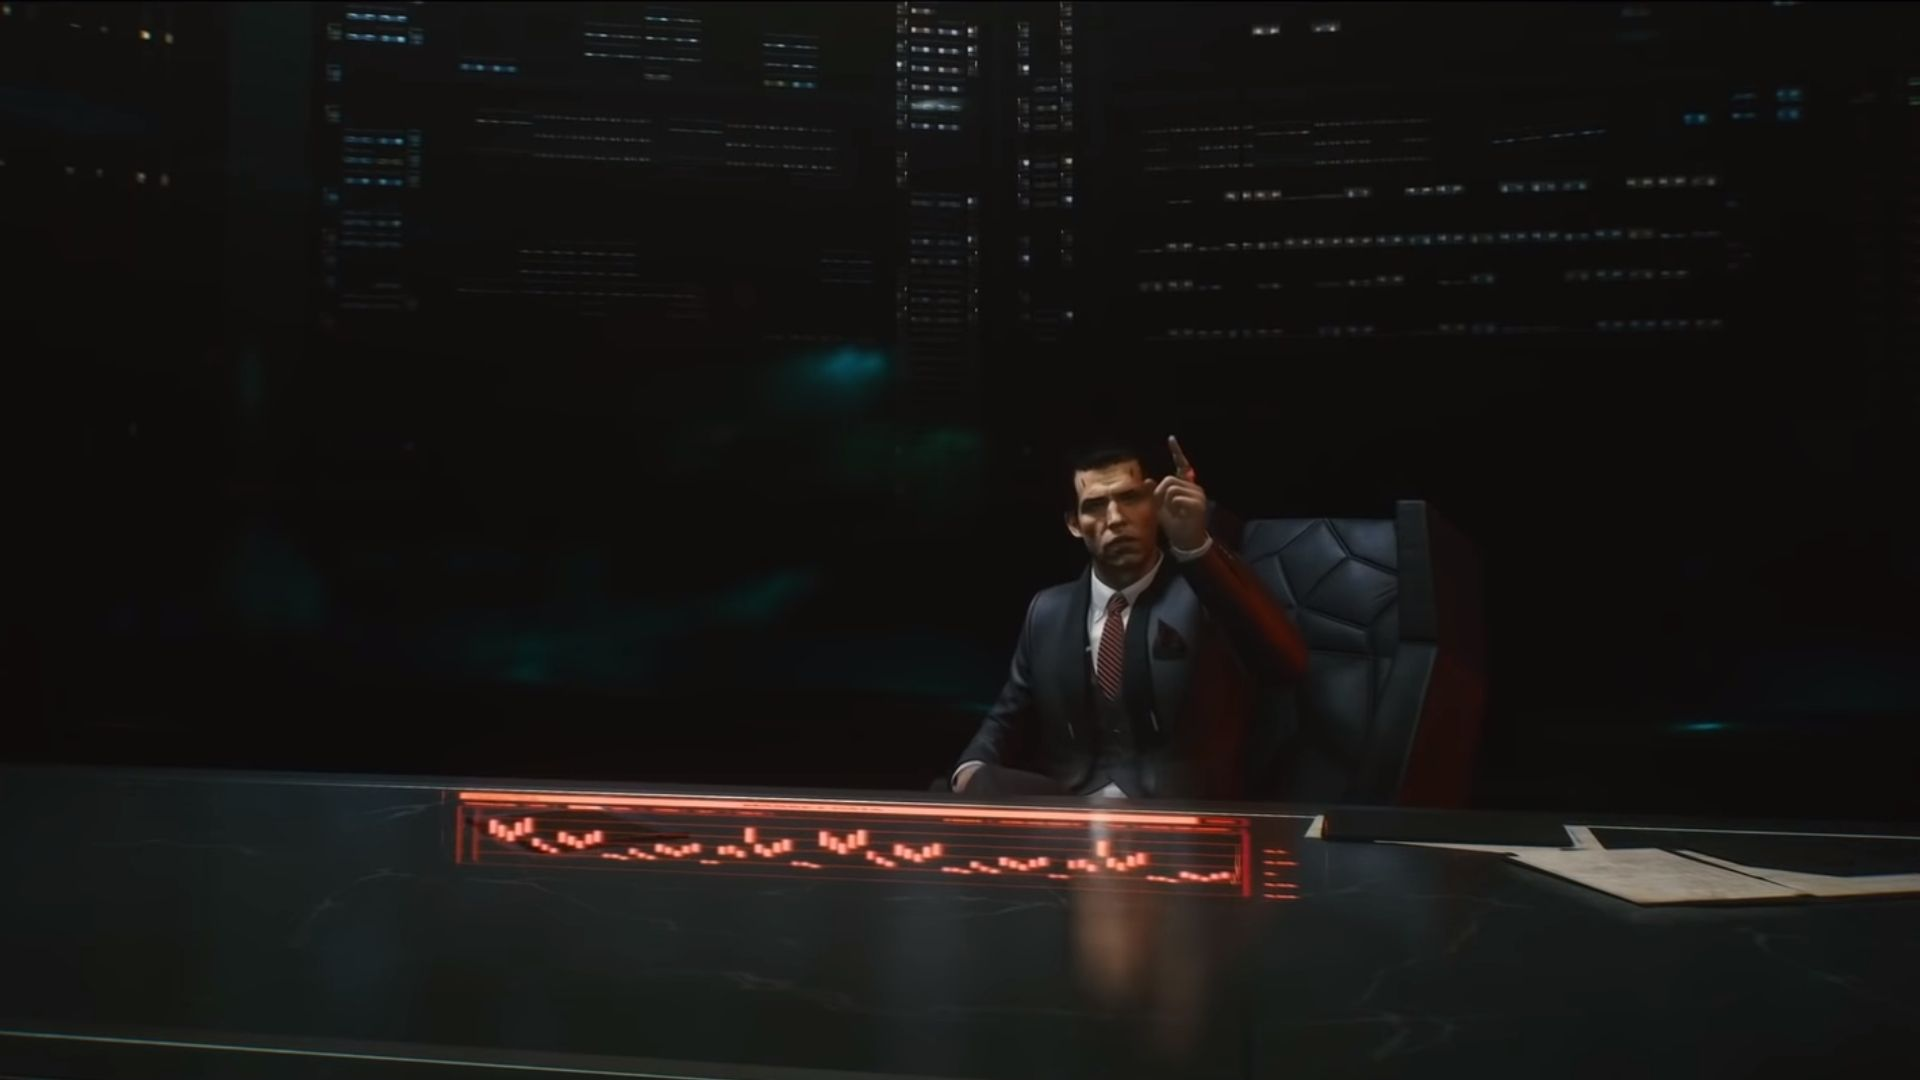 being shouted at in cyberpunk 2077